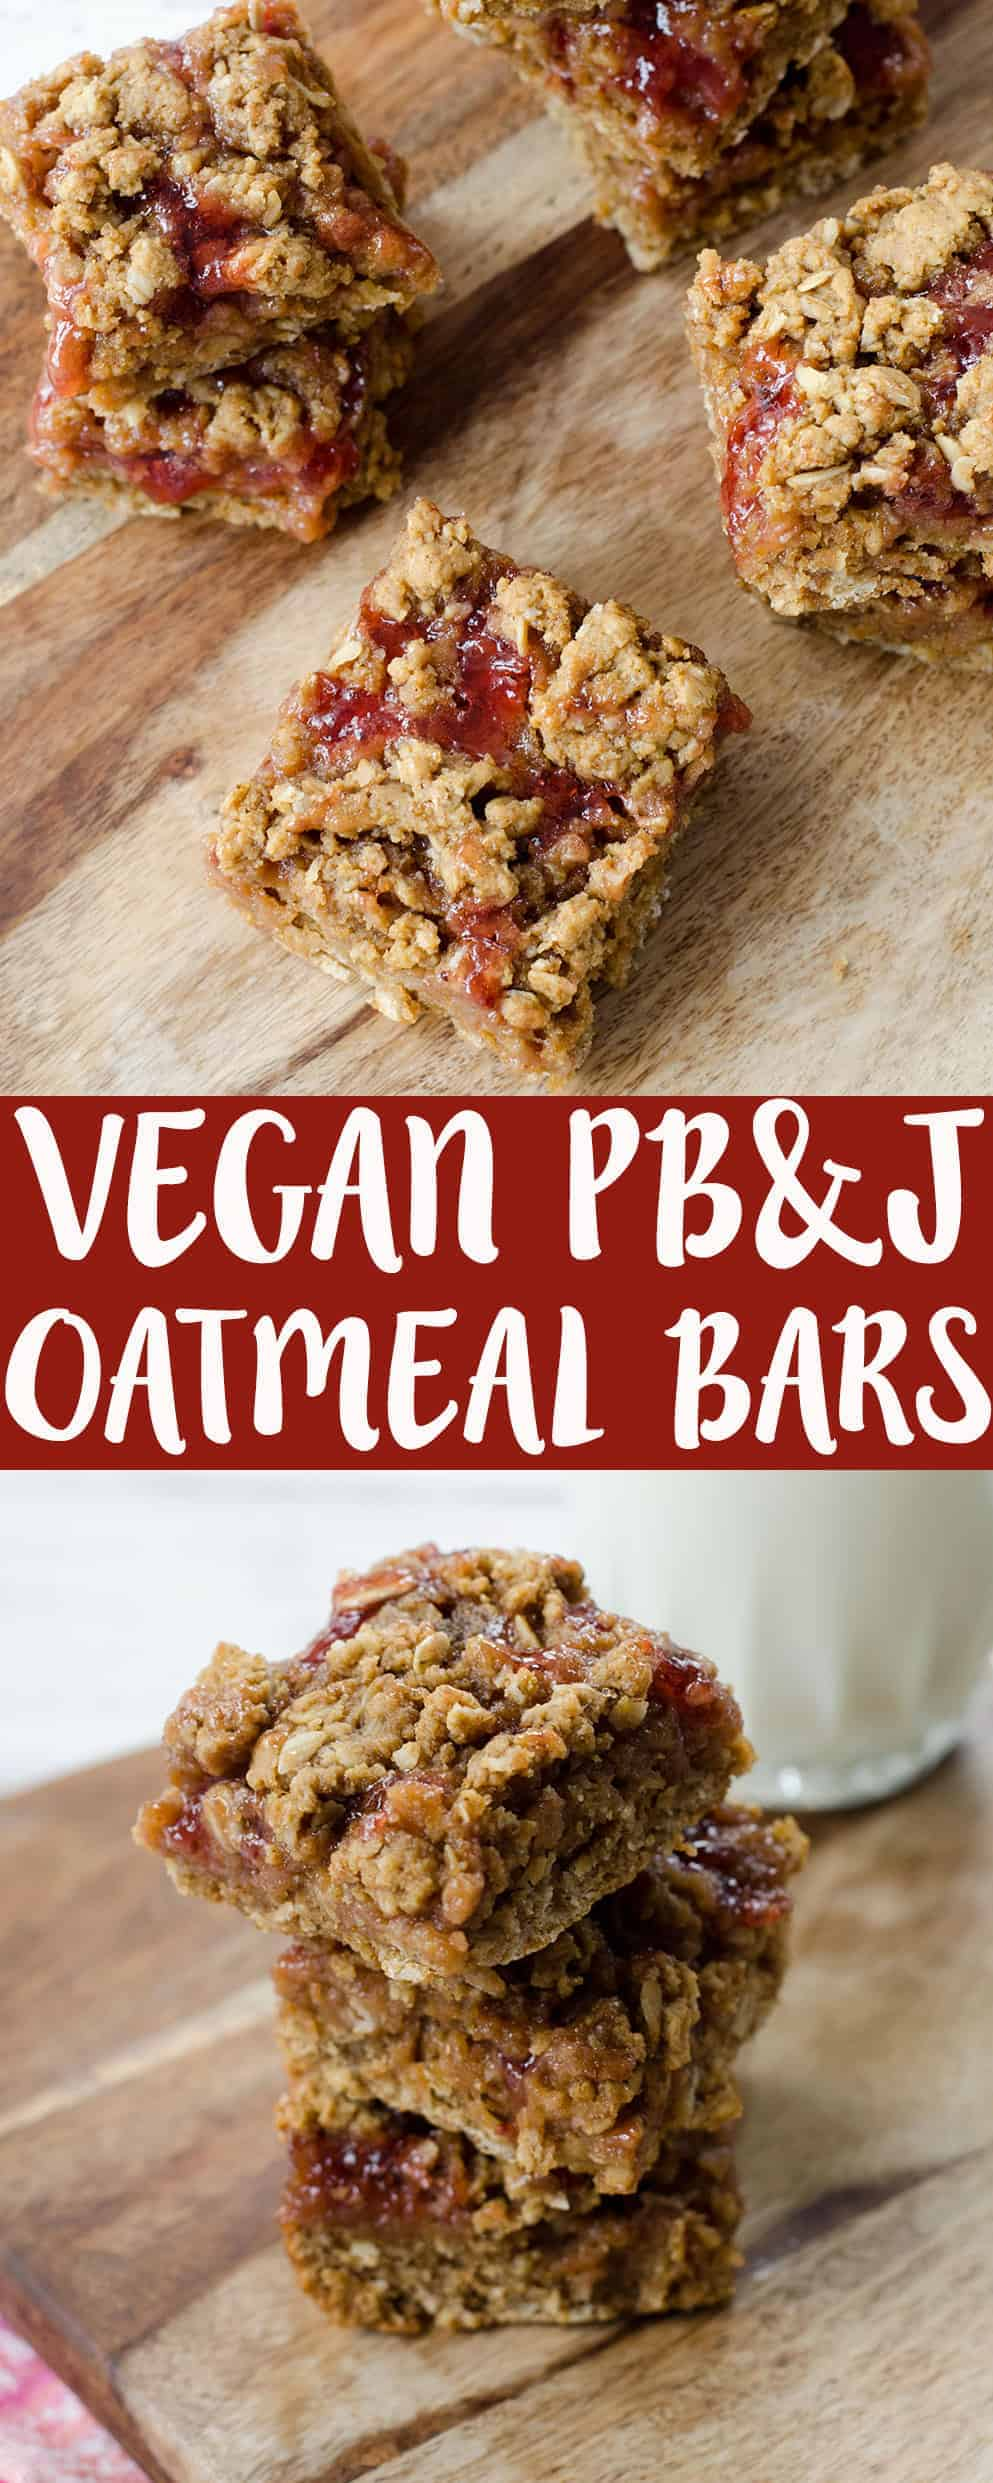 Peanut Butter and Jelly Oatmeal Bars! A wholesome, vegan dessert that everyone will love. Strawberry jam sandwiched between a whole-wheat peanut butter crust. Ready in just 25 minutes! | www.delishknowledge.com